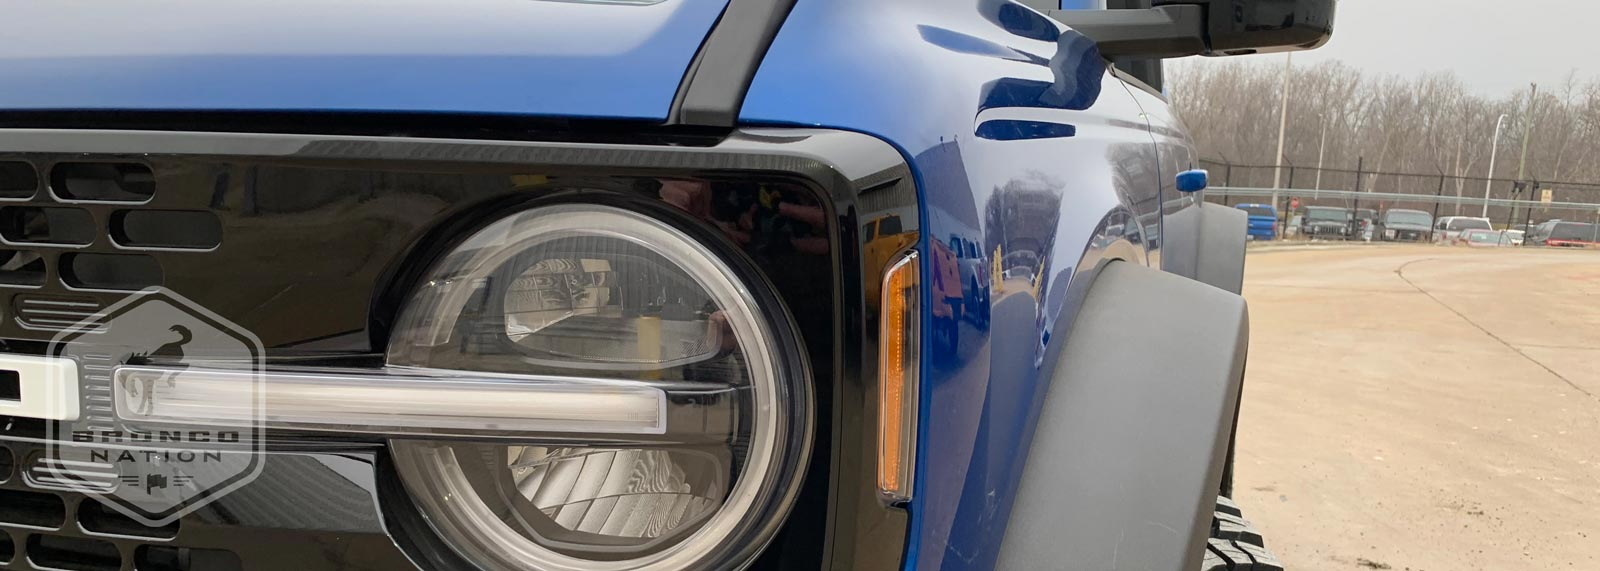 First Look at Lightning Blue Bronco